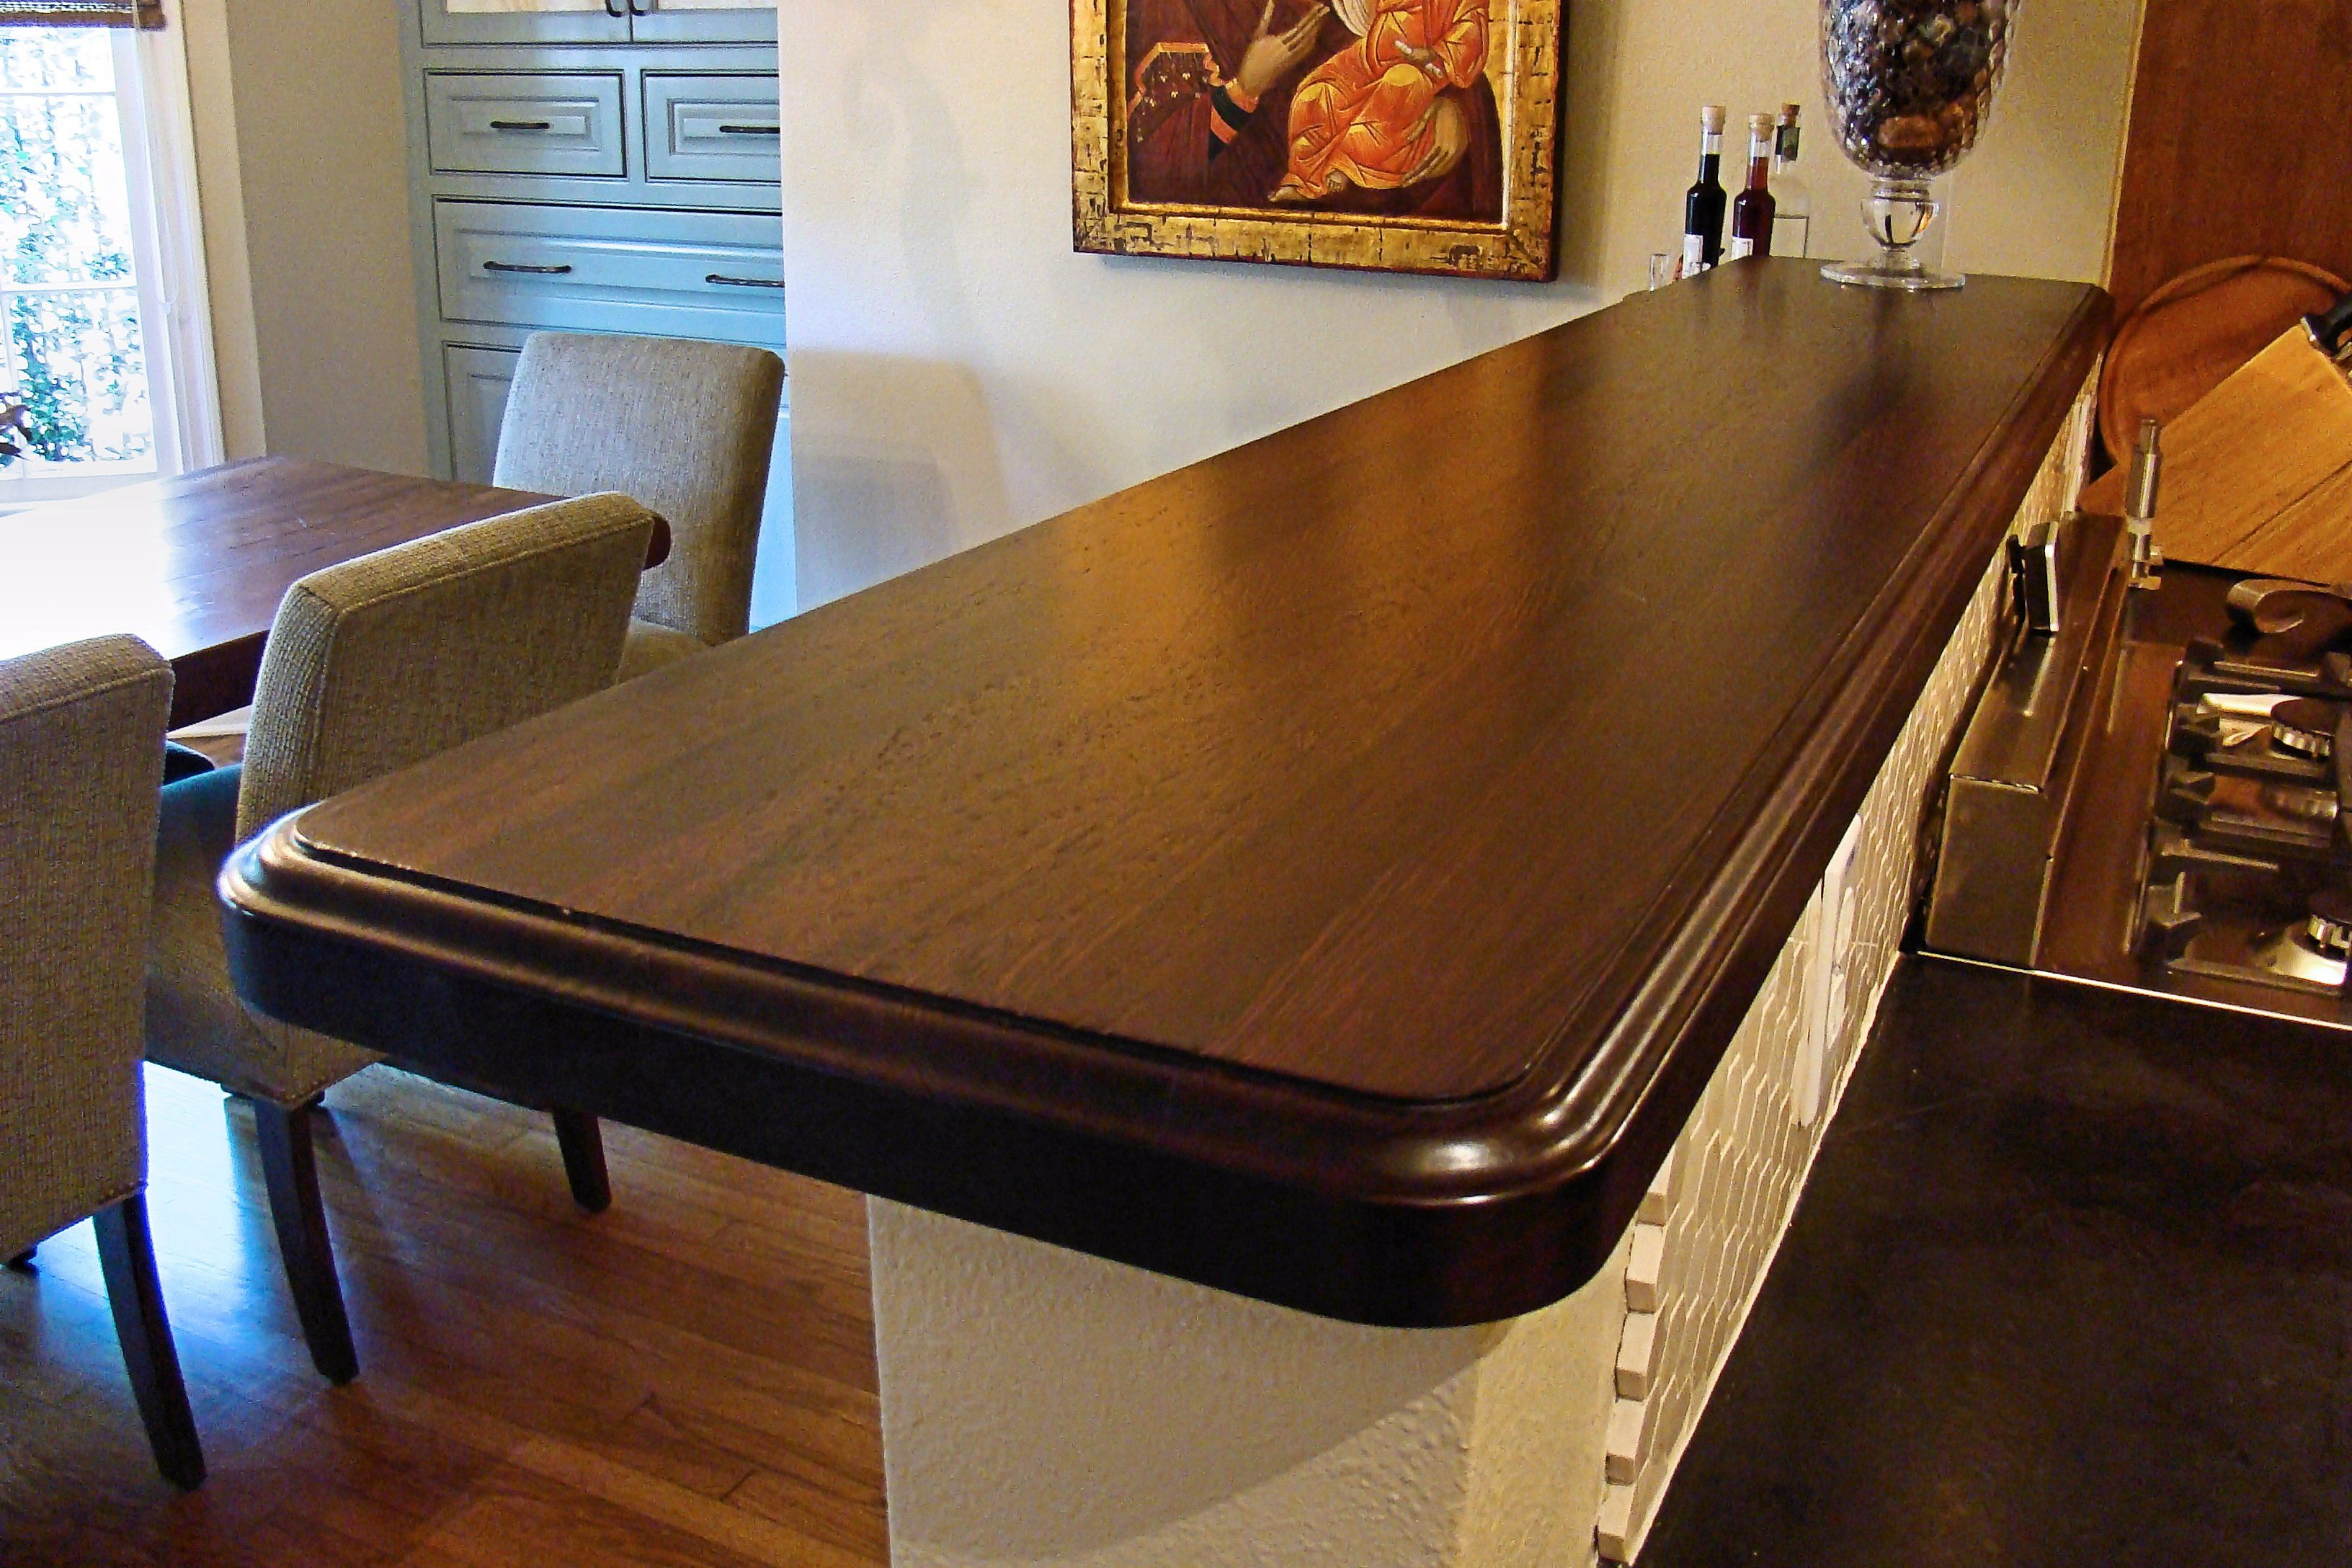 Charming Wenge Edge Grain Custom Wood Bar Top.